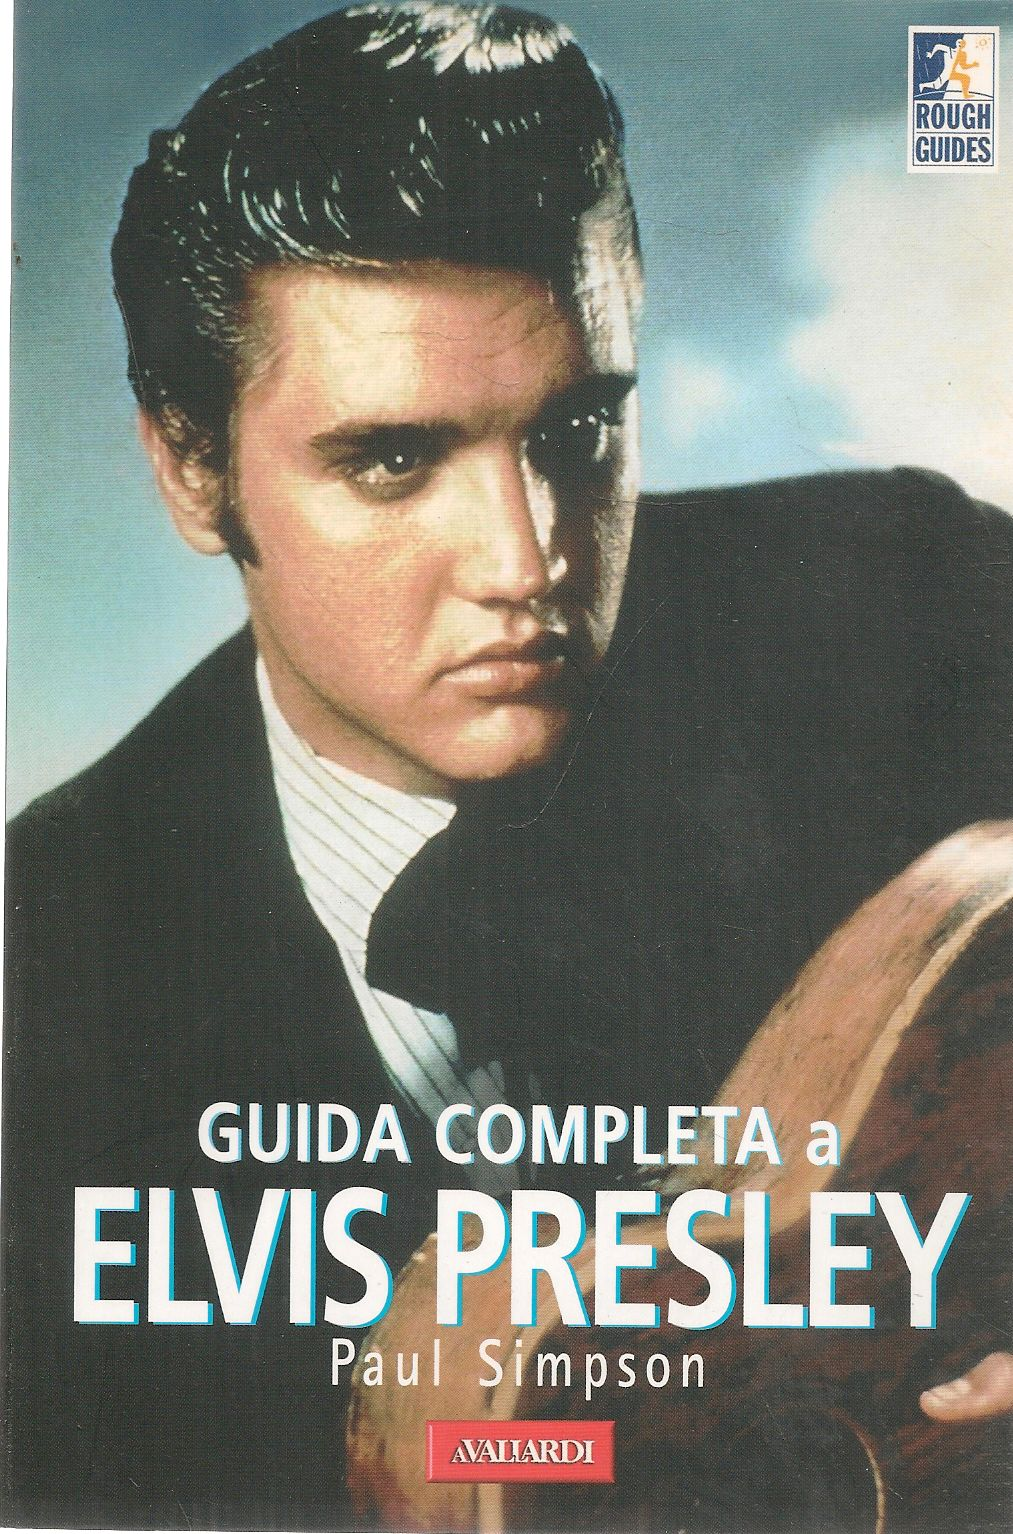 GUIDA COMPLETA A ELVIS PRESTLEY - PAUL SIMPSON